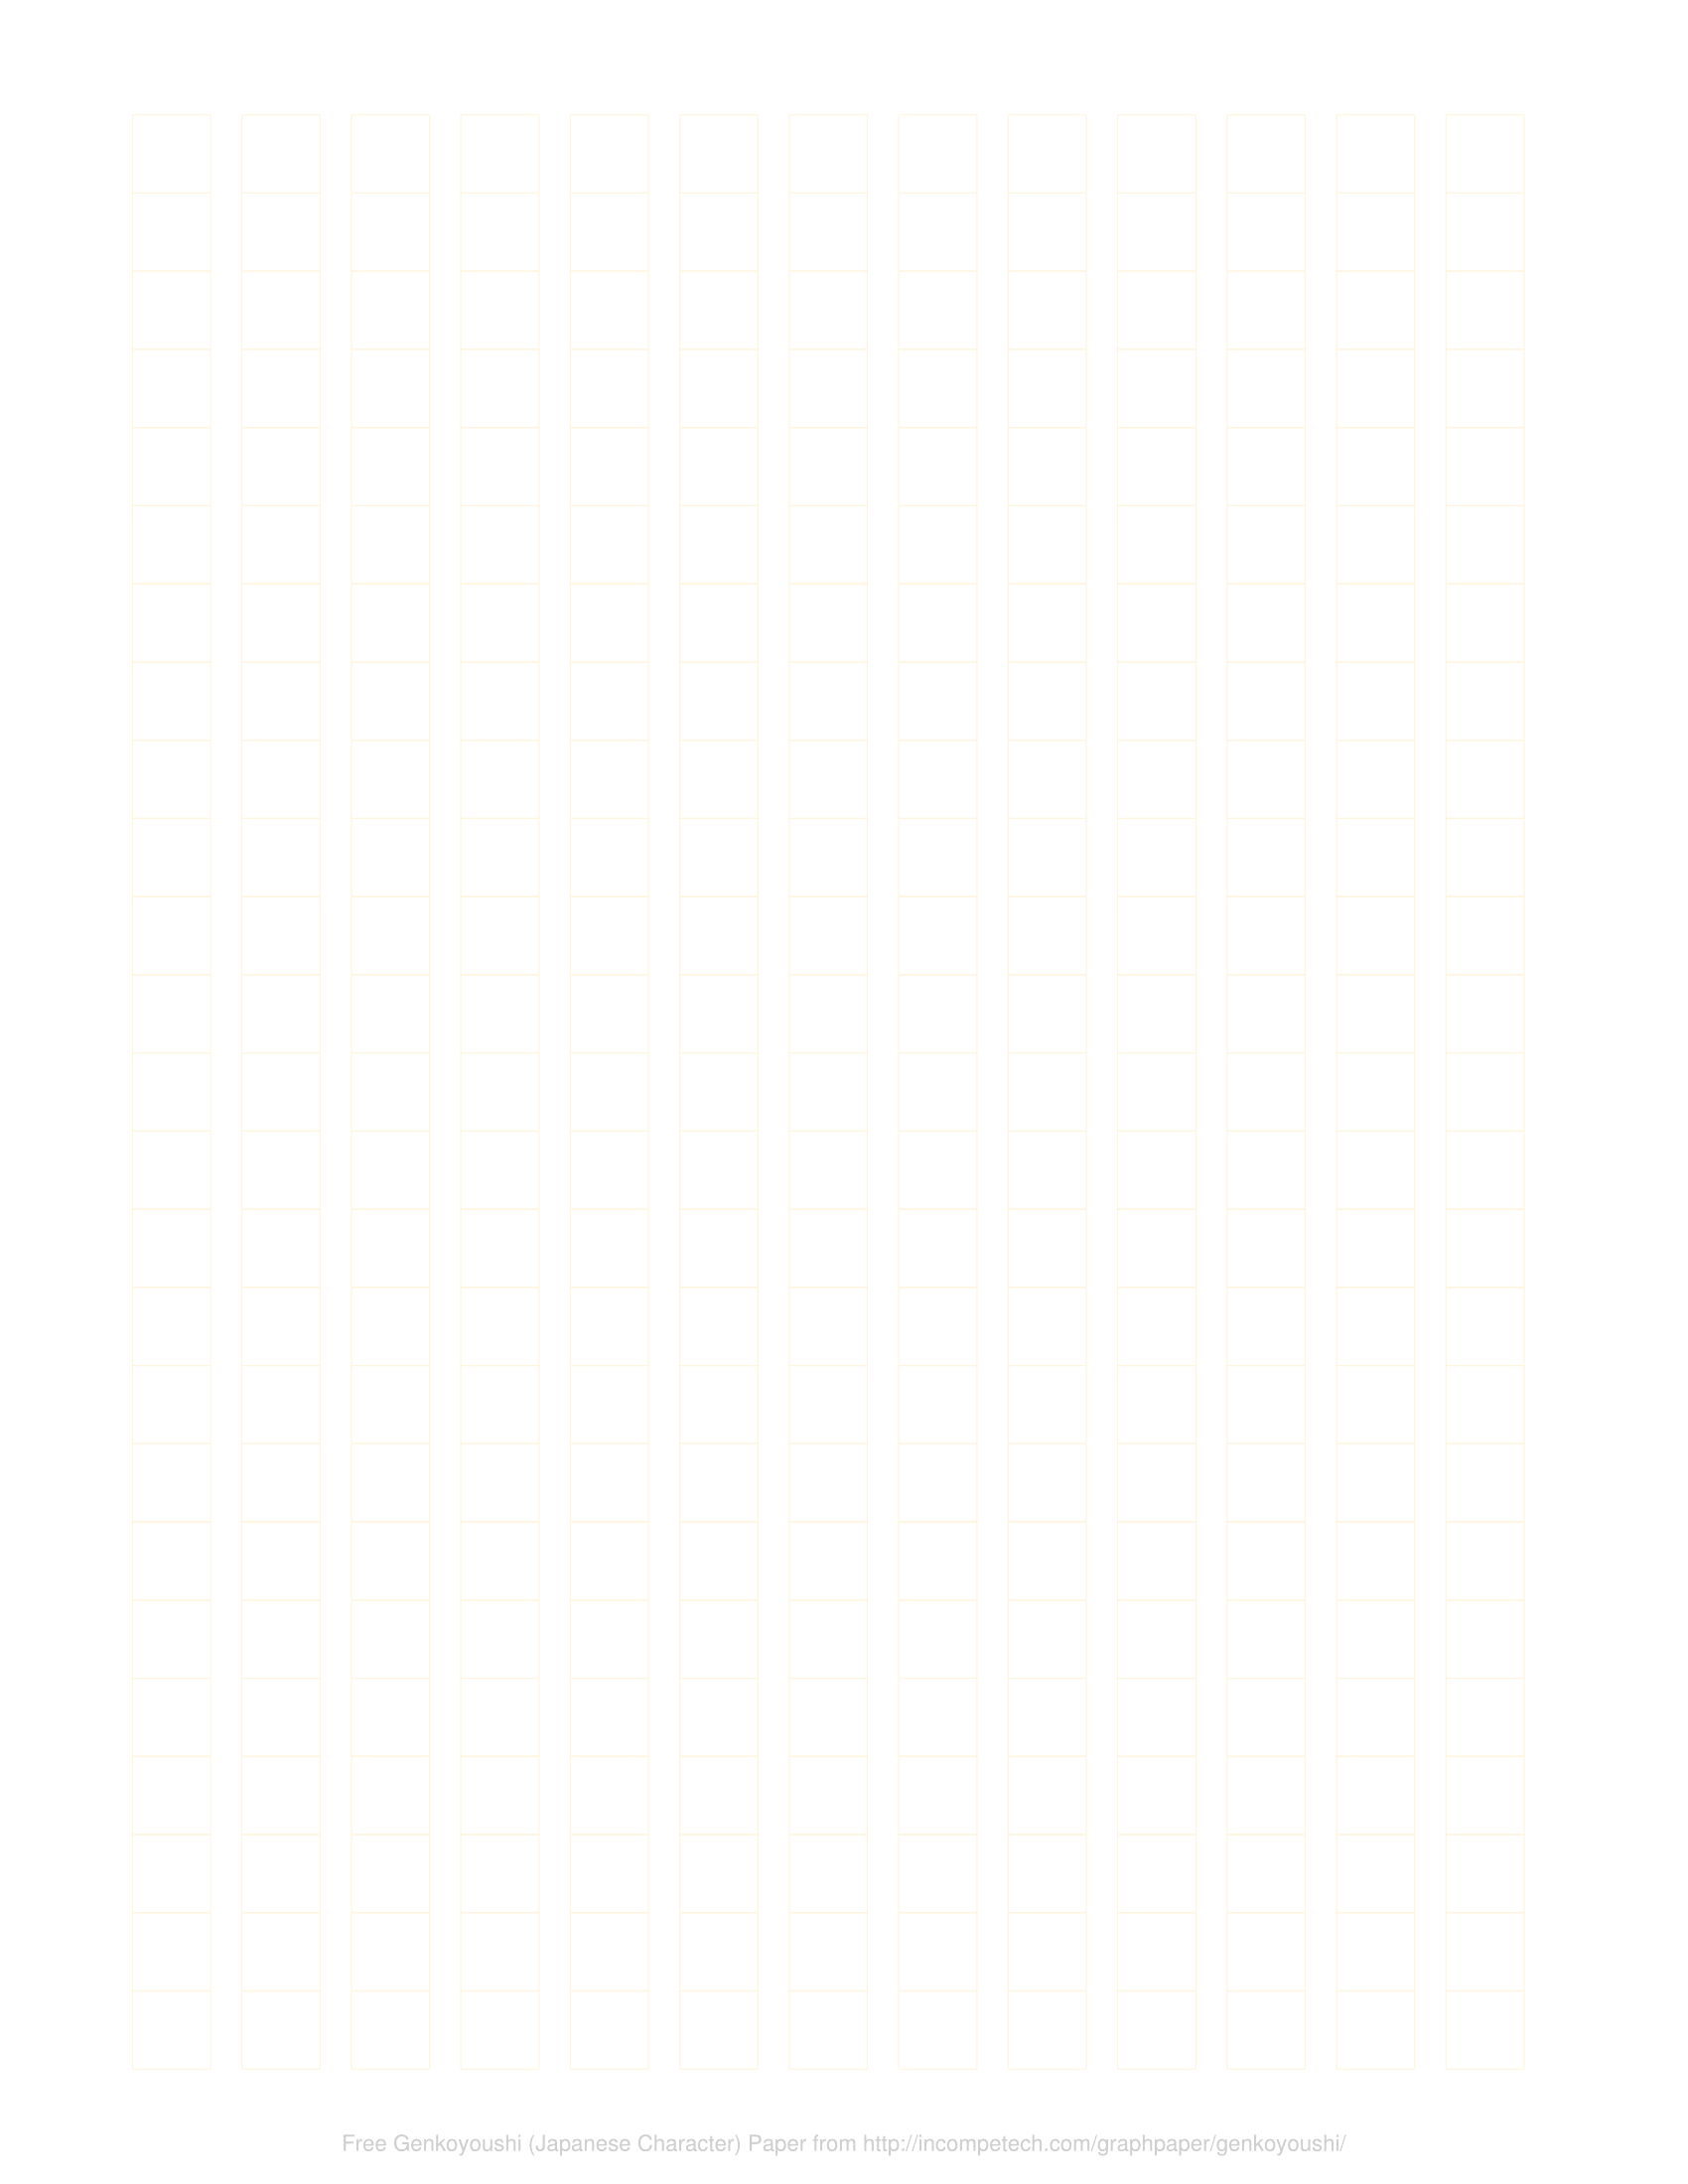 Free Online Graph Paper / Genkoyoushi (Japanese Character)